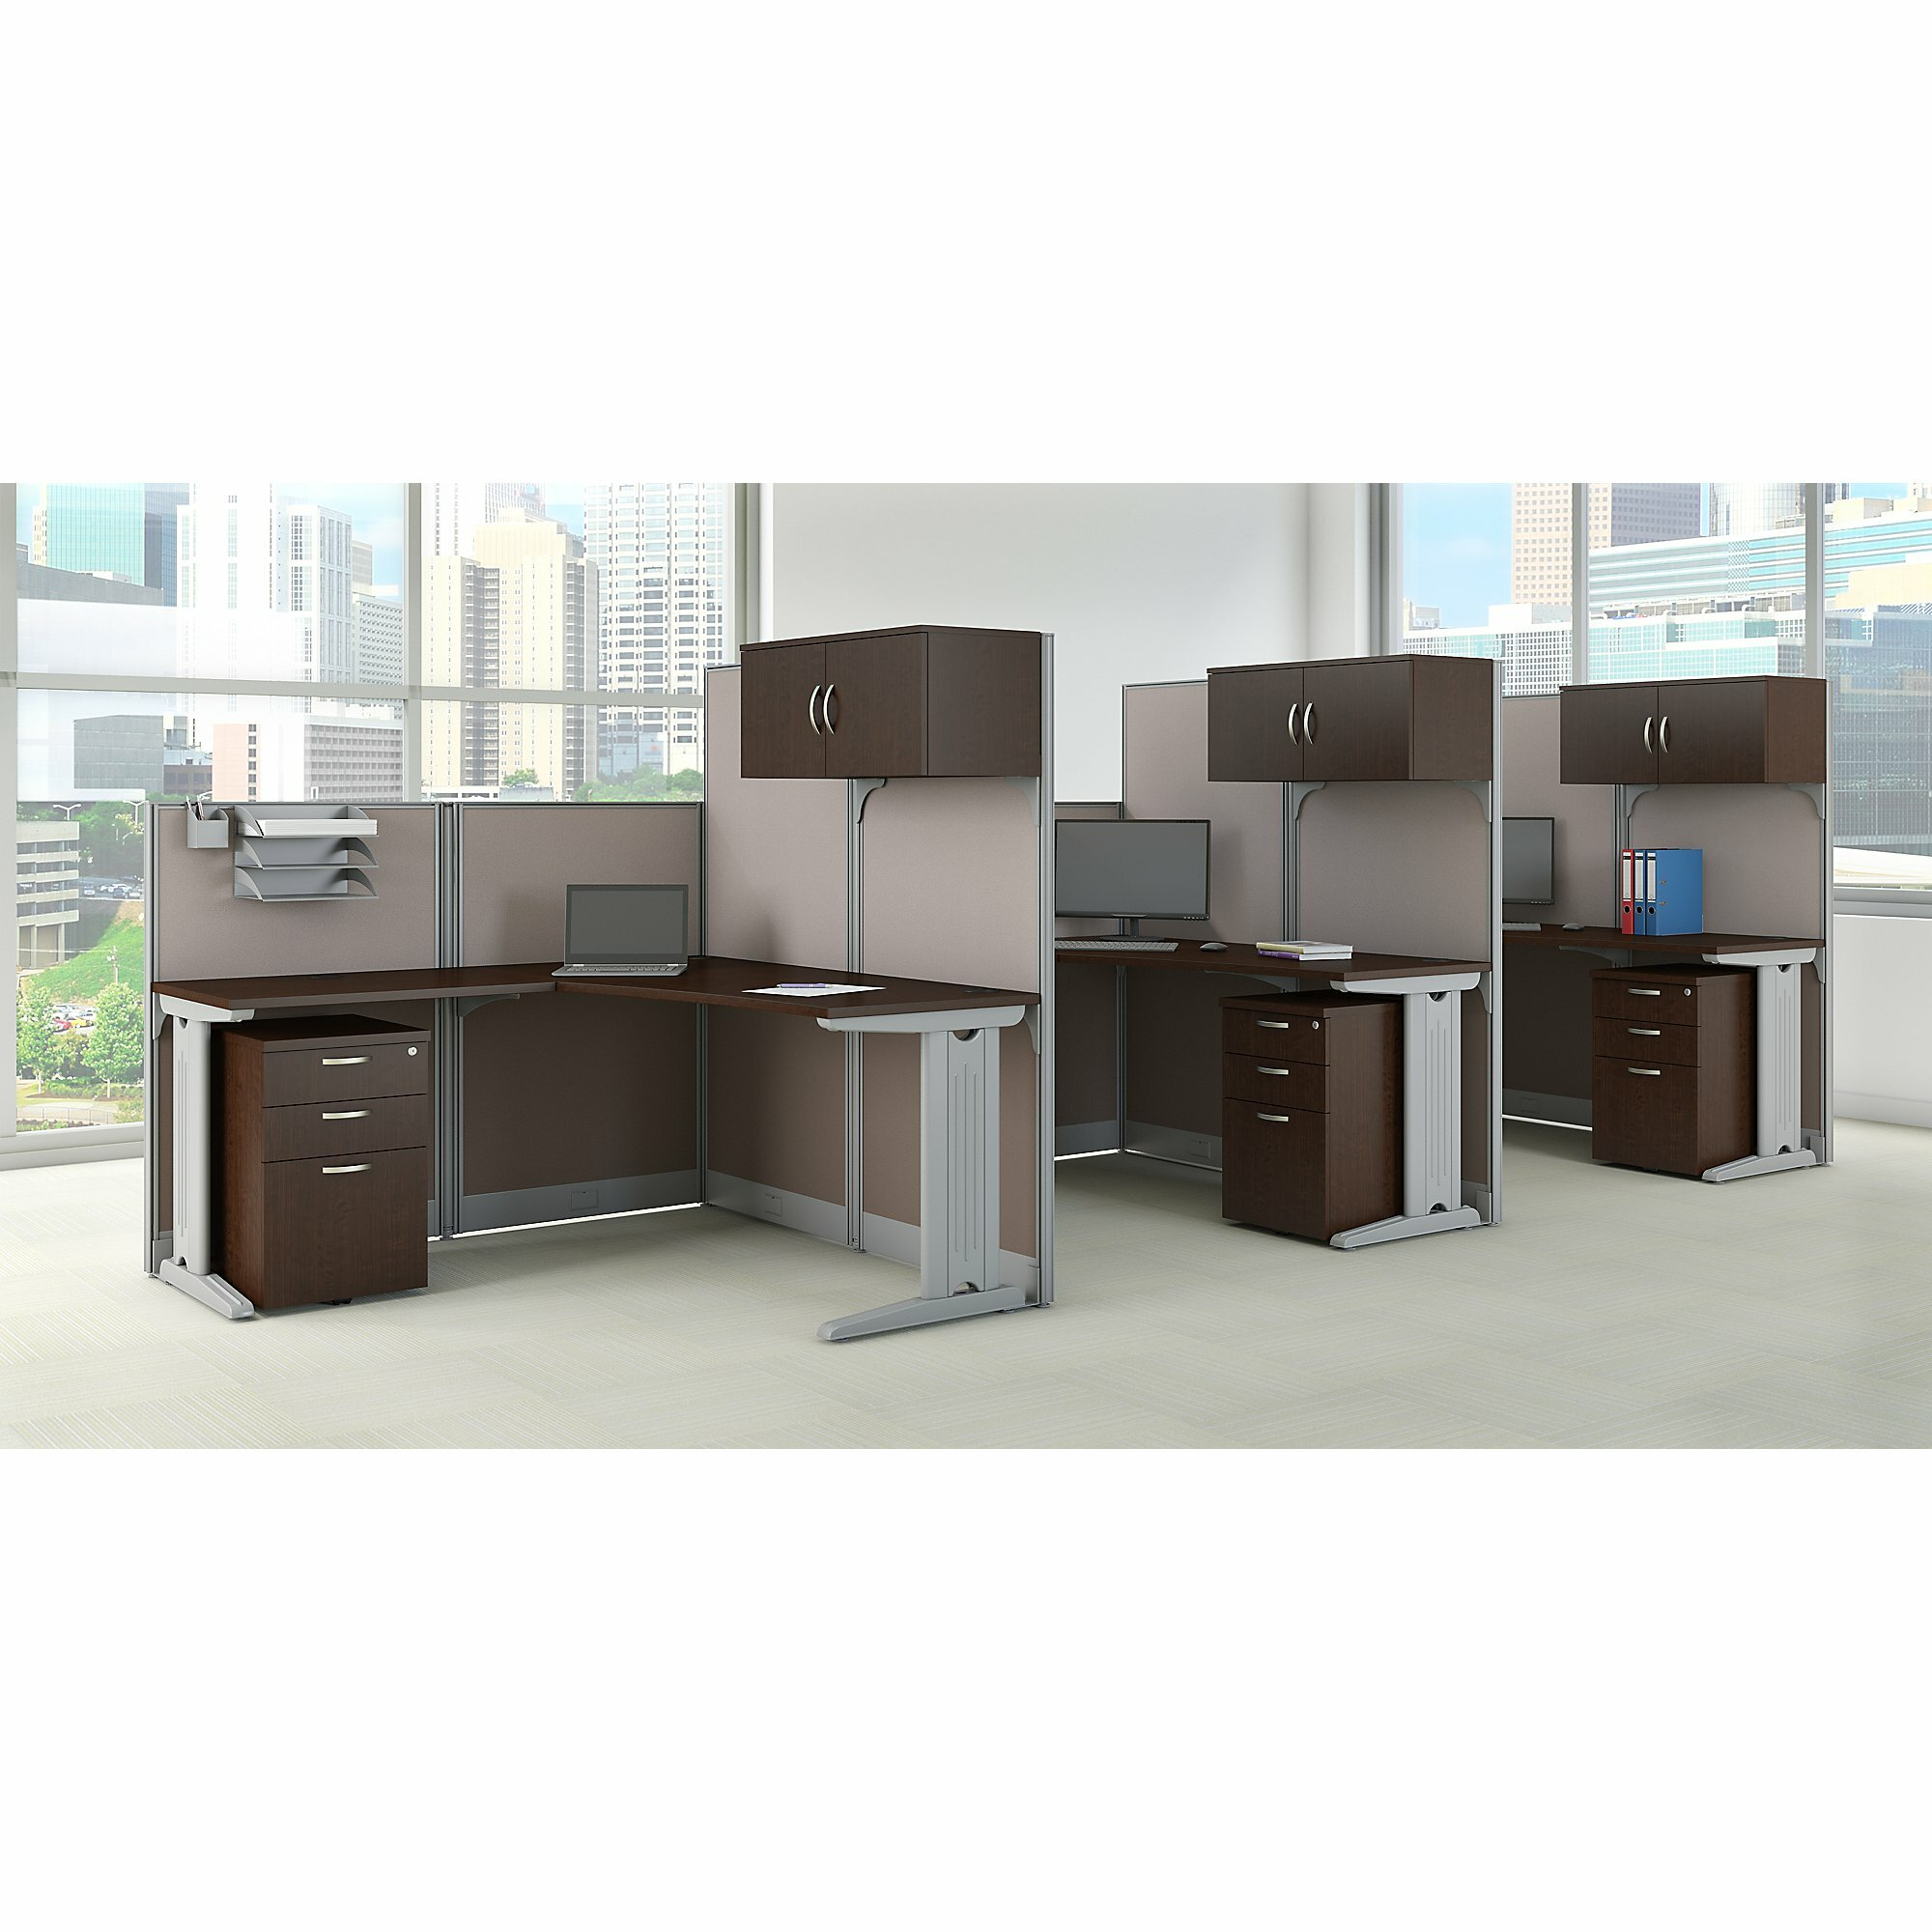 3 Person Cubicle Workstations 9 Piece L-Shape Desk on